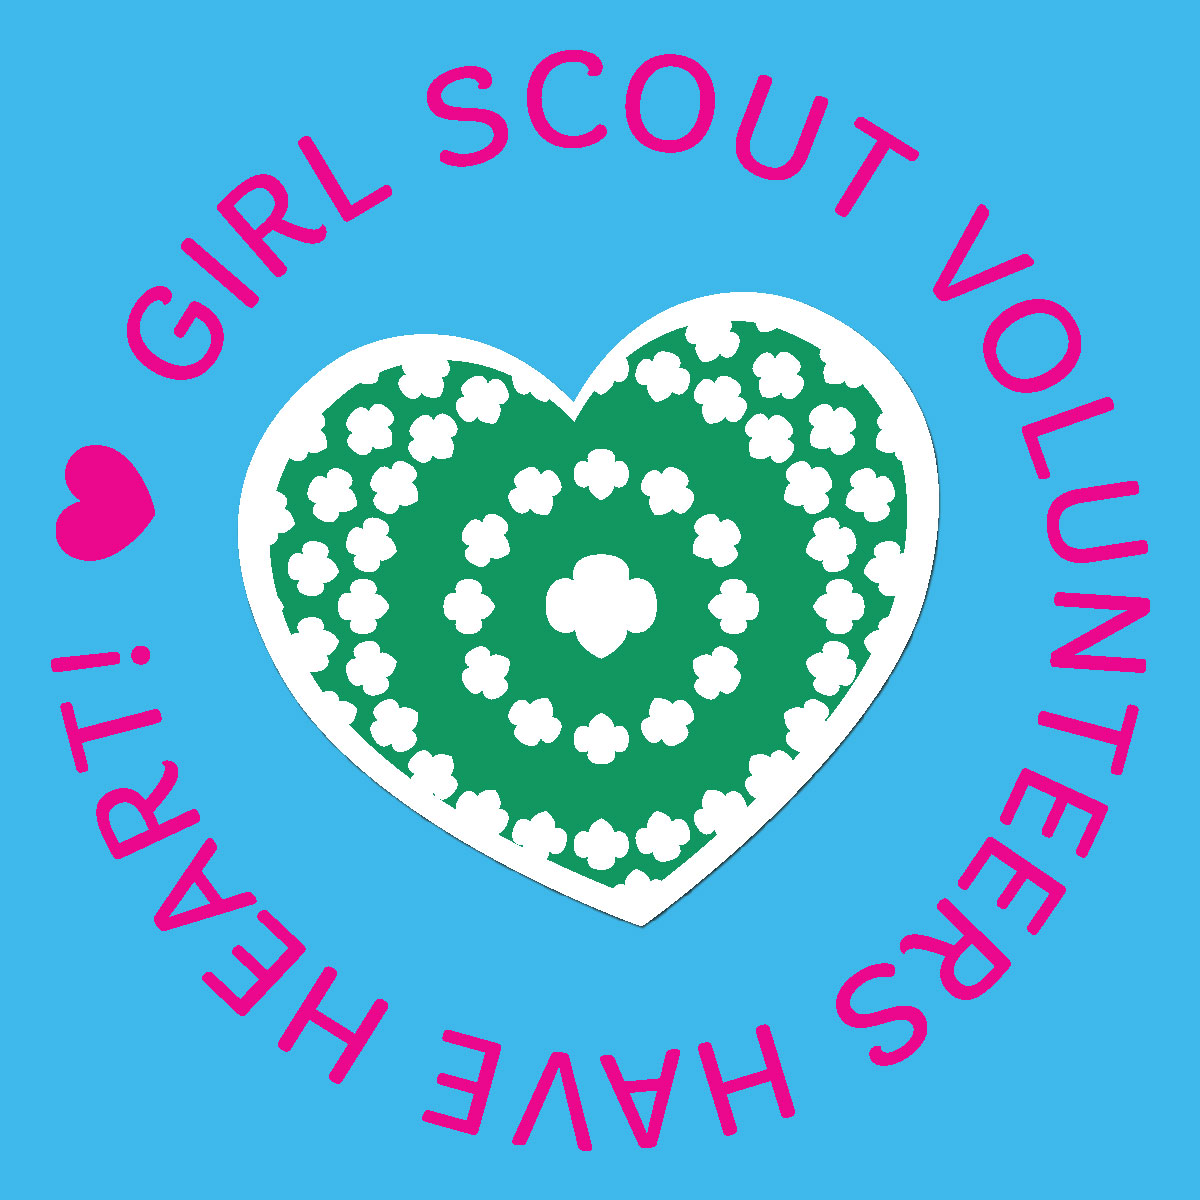 Girl scouts western pennsylvania shout out for volunteers with heart publicscrutiny Image collections